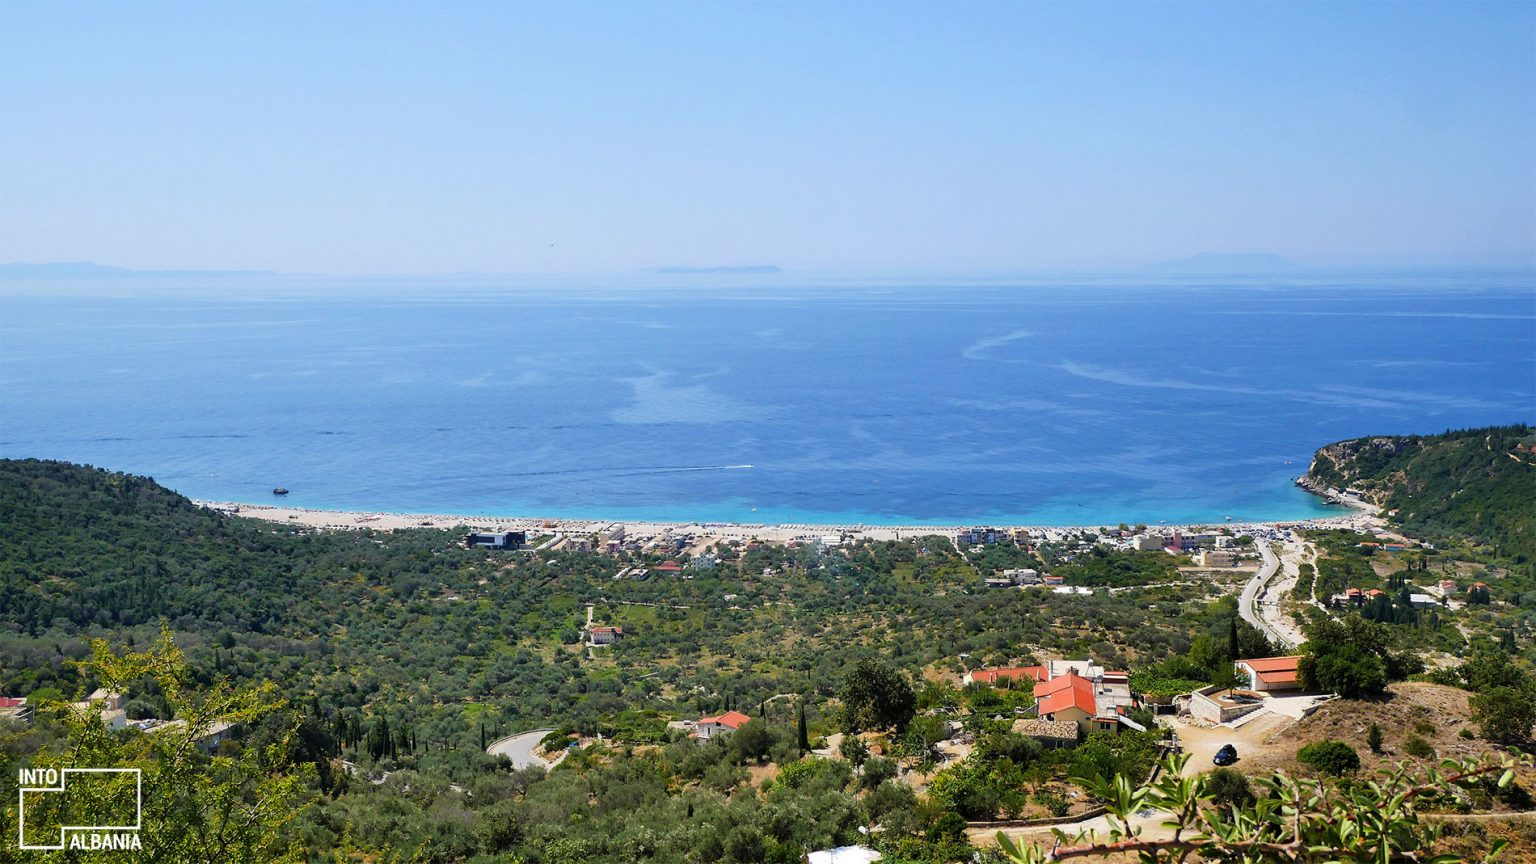 Livadh beach from above, photo by IntoAlbania